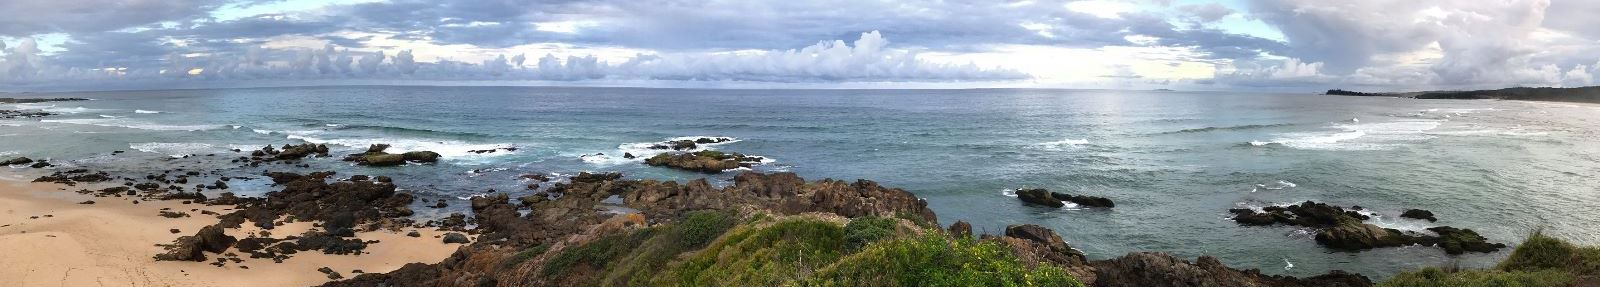 My favourite place in the world, Tuross Head, New South Wales, Australia.